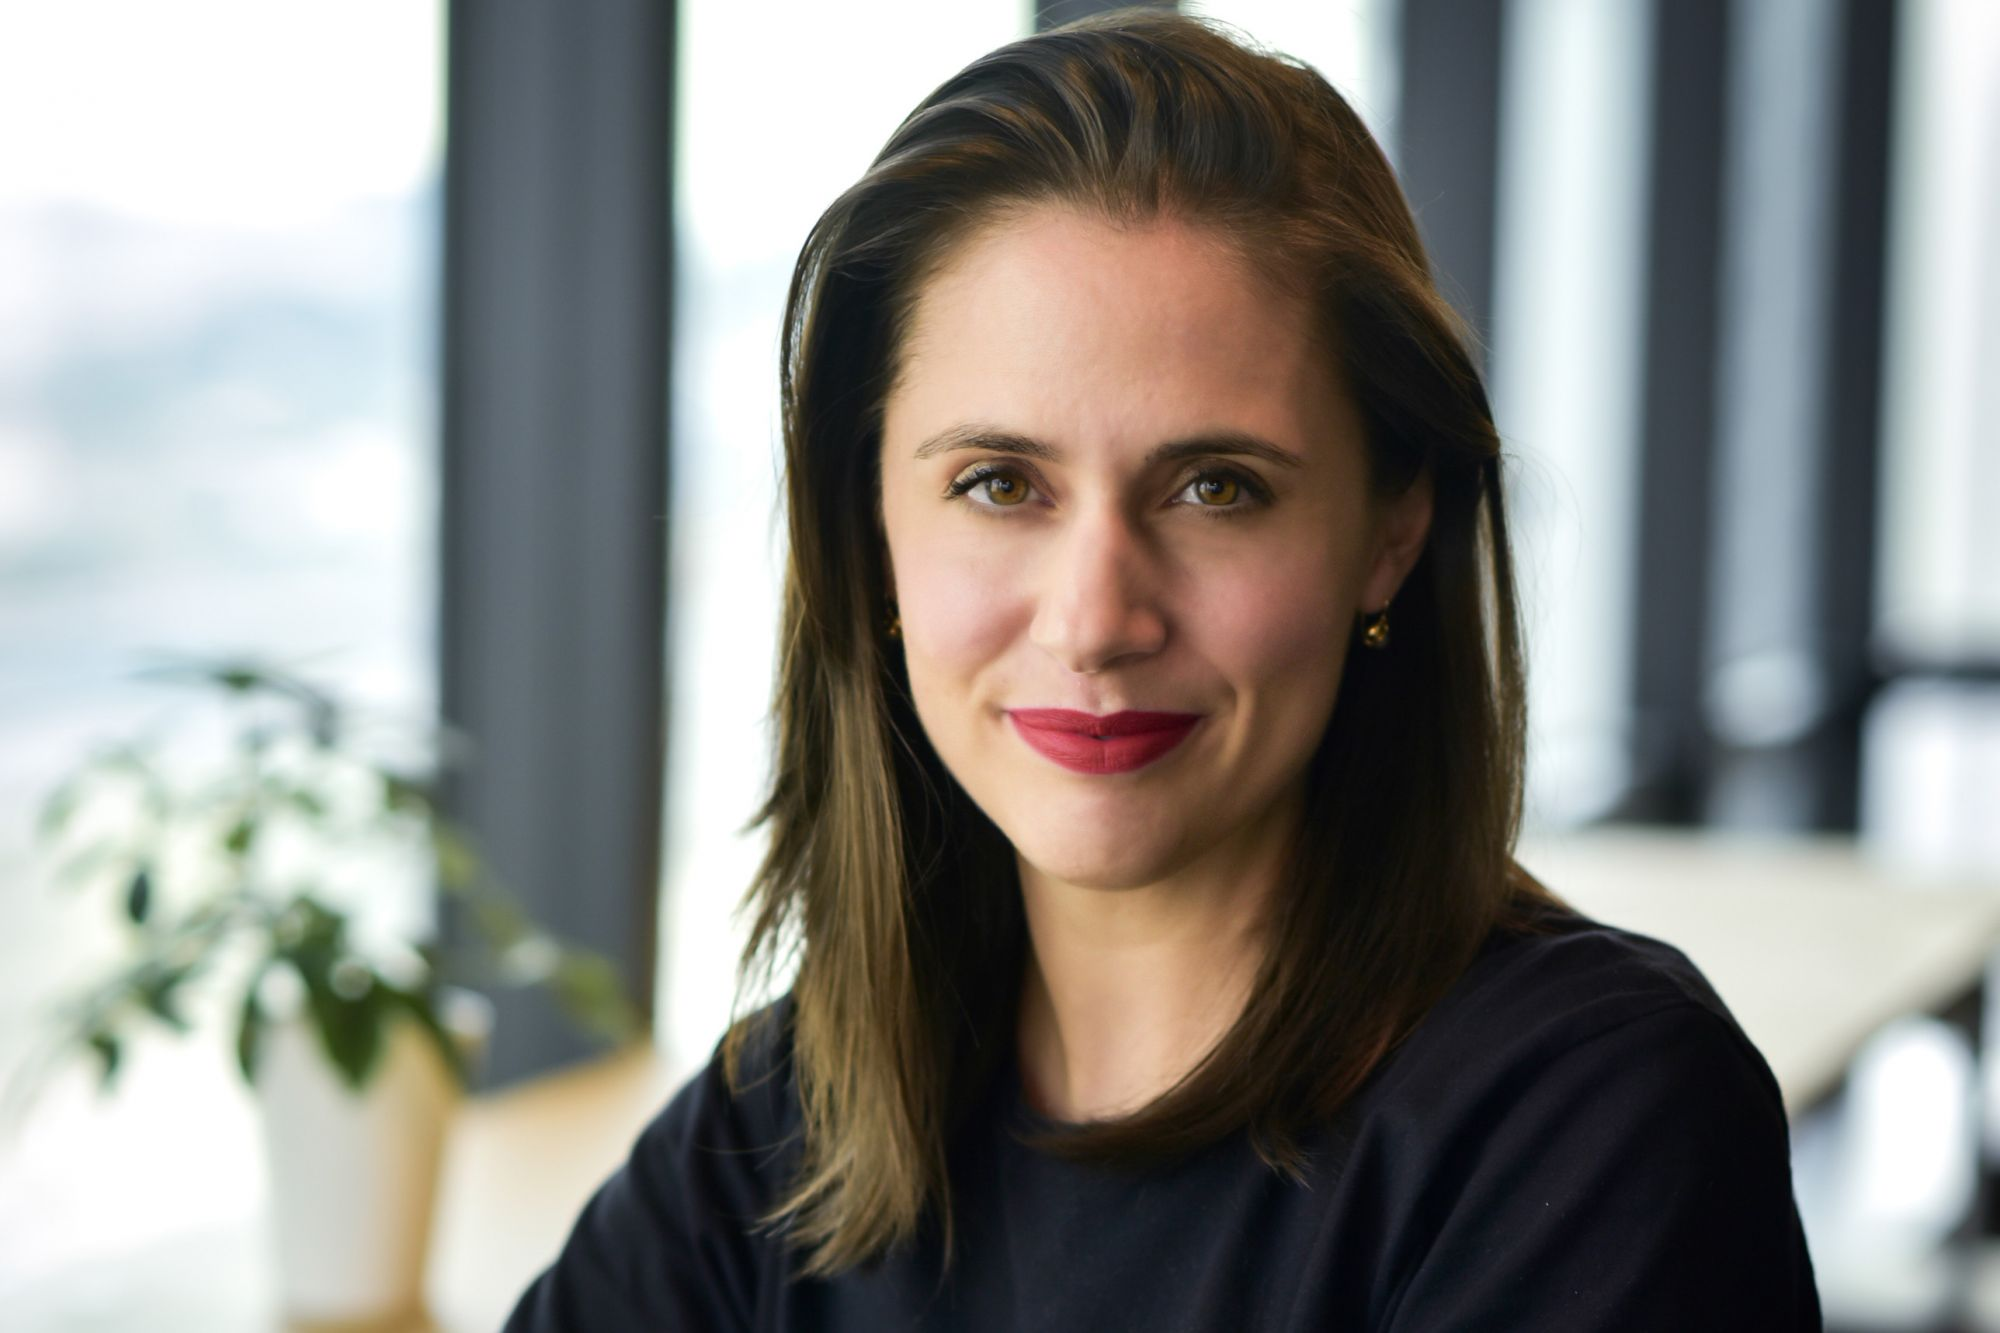 How to Break the Glass Ceiling in a Male-Dominated Industry, by Zalora's Silvia Thom